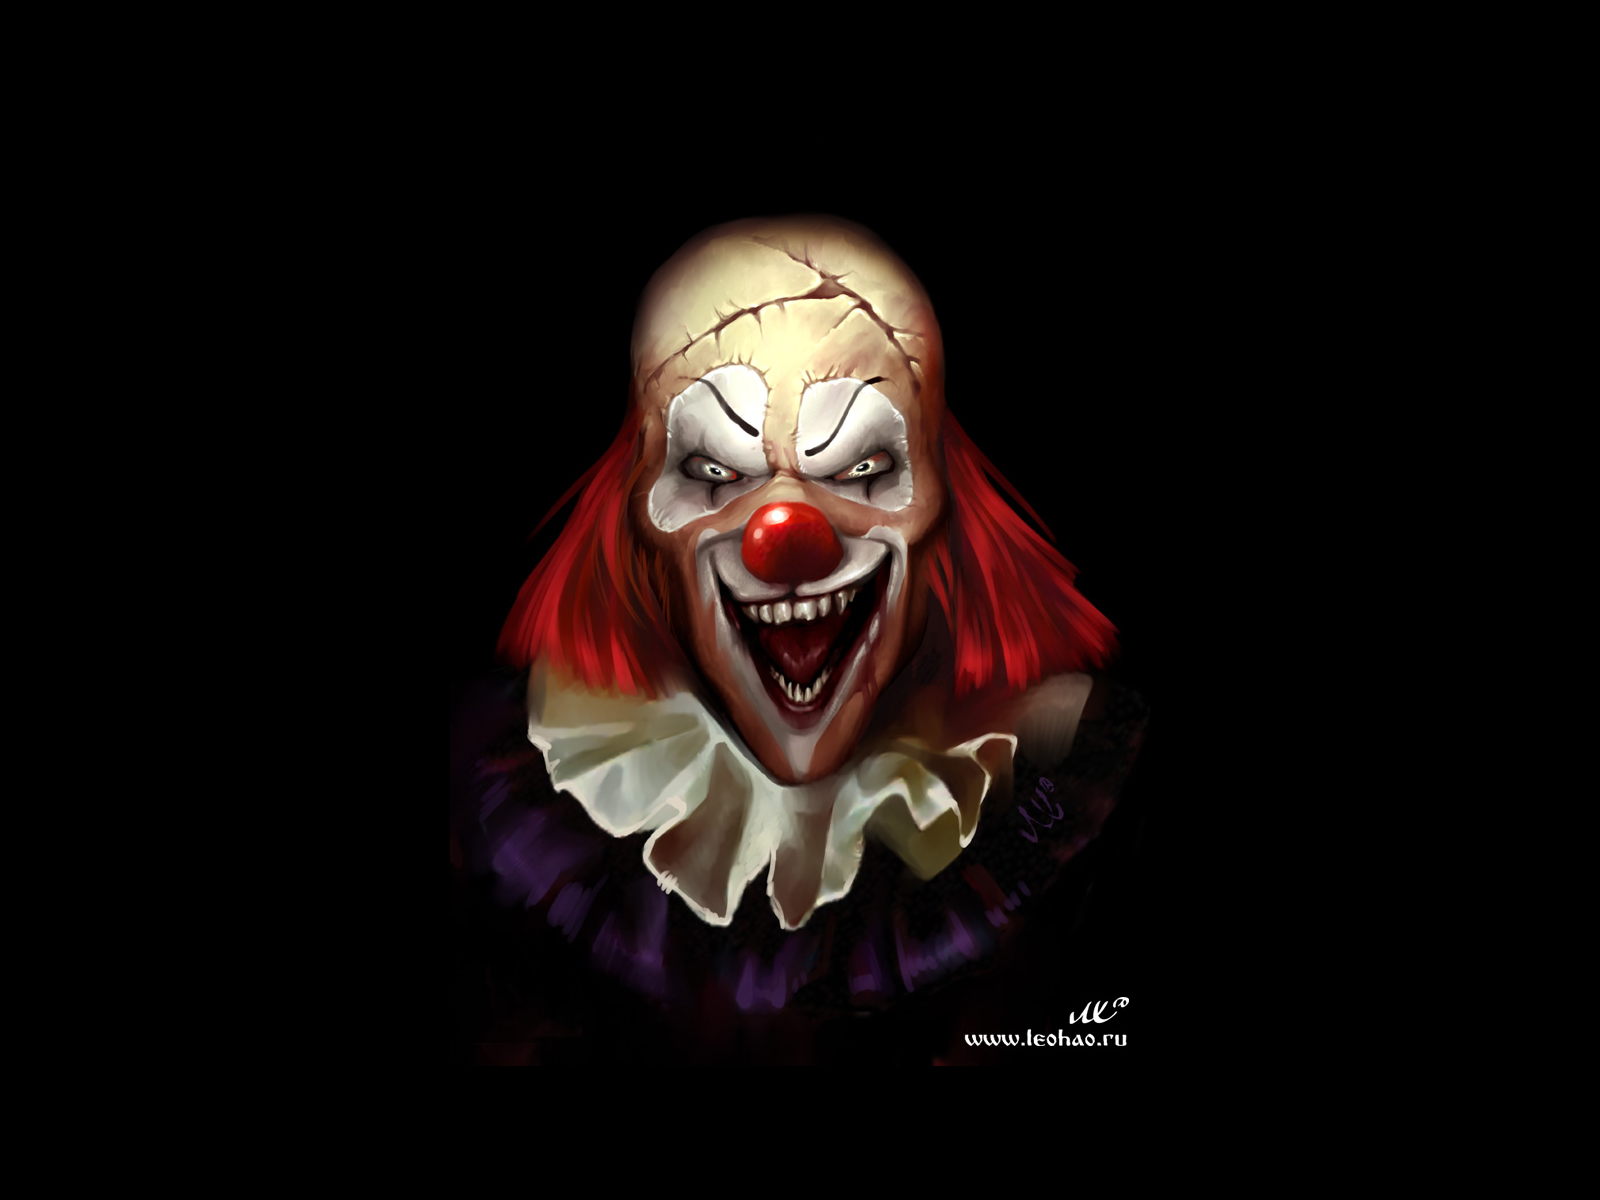 Evil Clown Wallpaper Clown wallpaper background 1600x1200